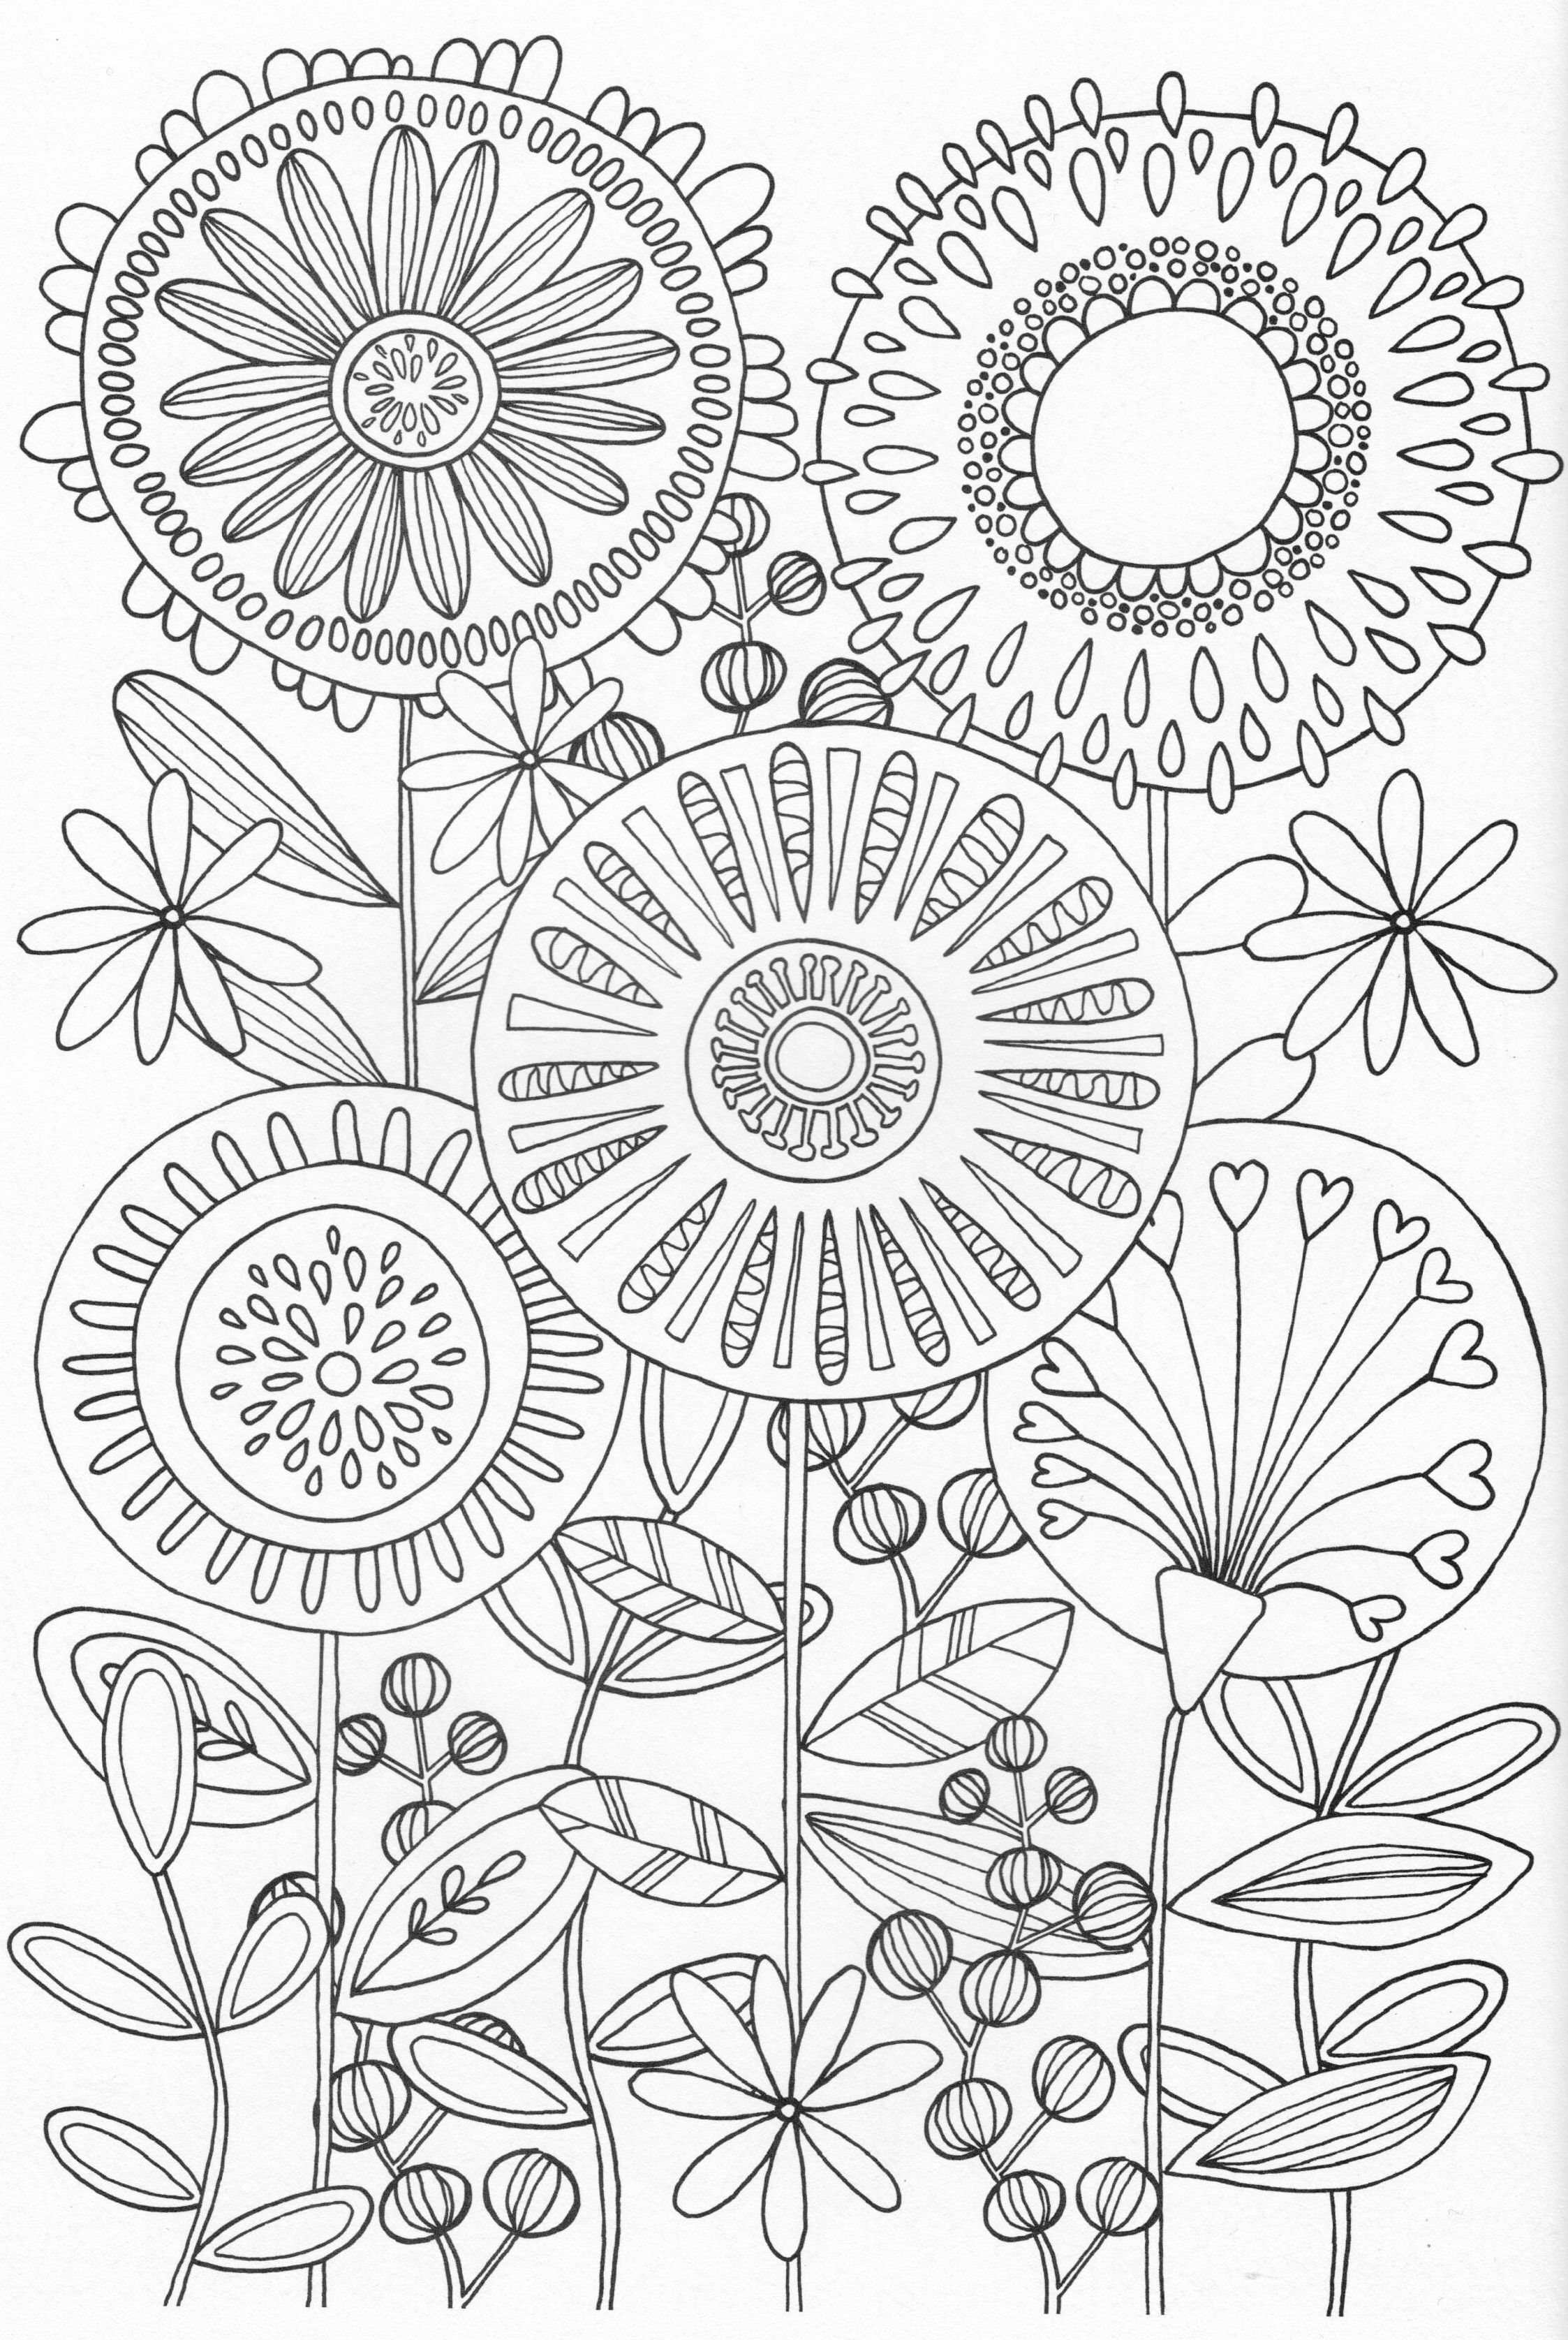 Scandinavian Coloring Book Pg 31 | Images | Pinterest | Coloring ...